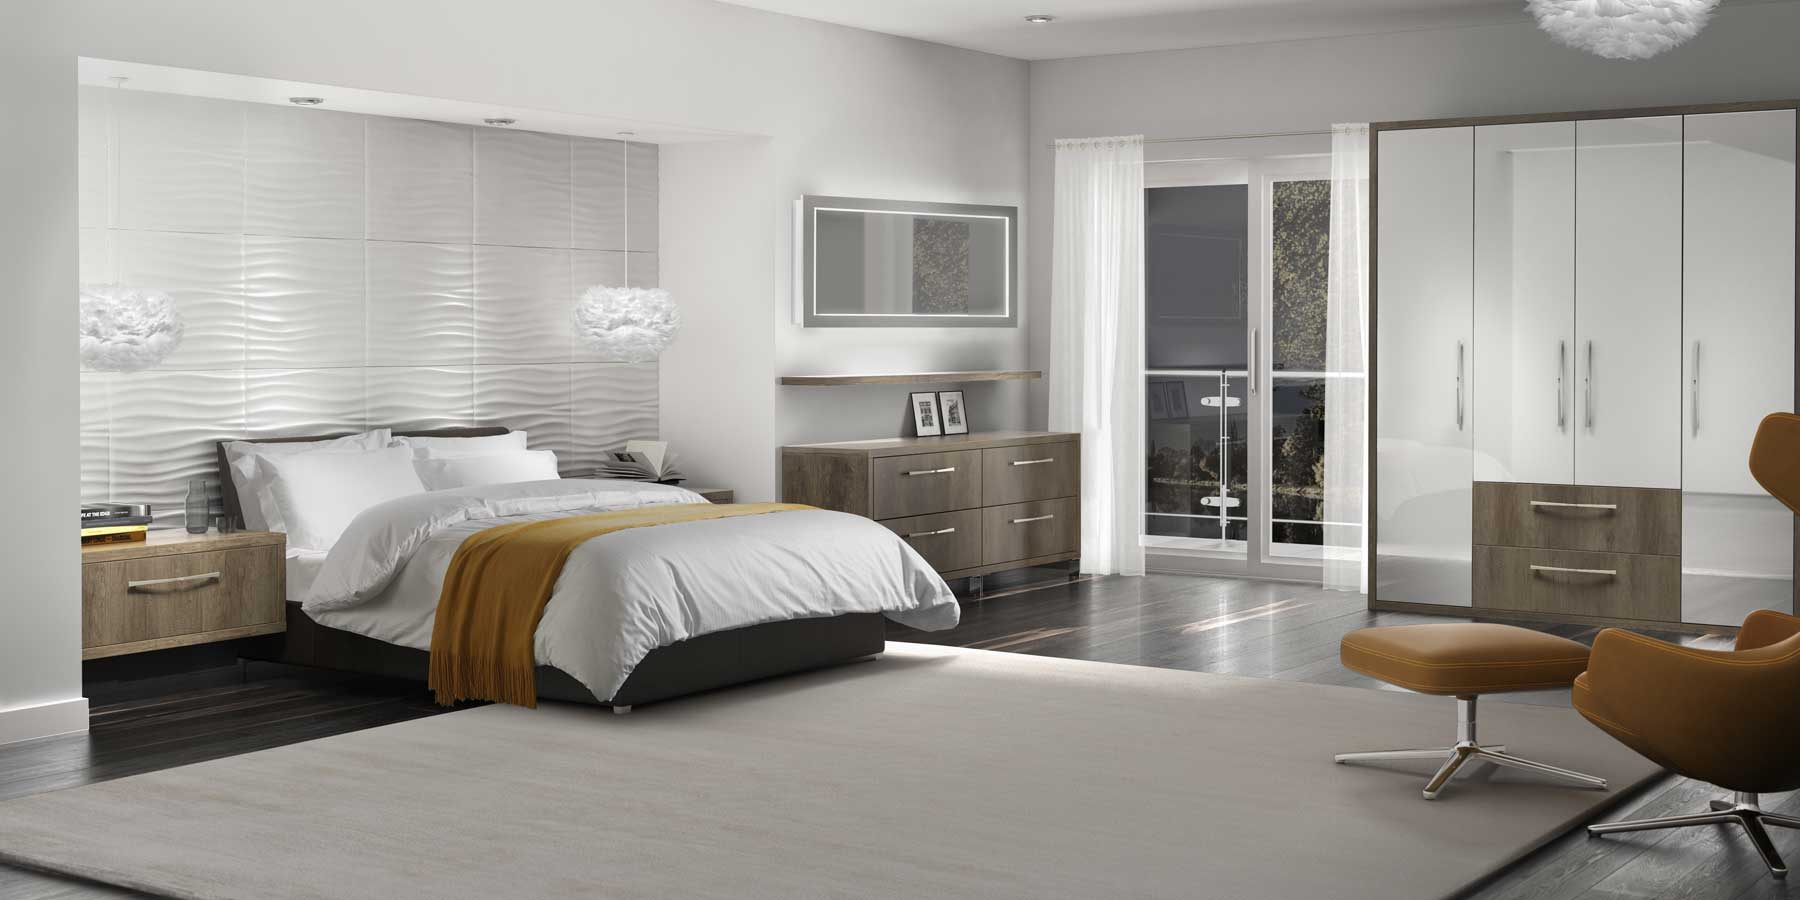 Bedroom Furniture Cardigan Bedroom Design Supply Install Cardigan